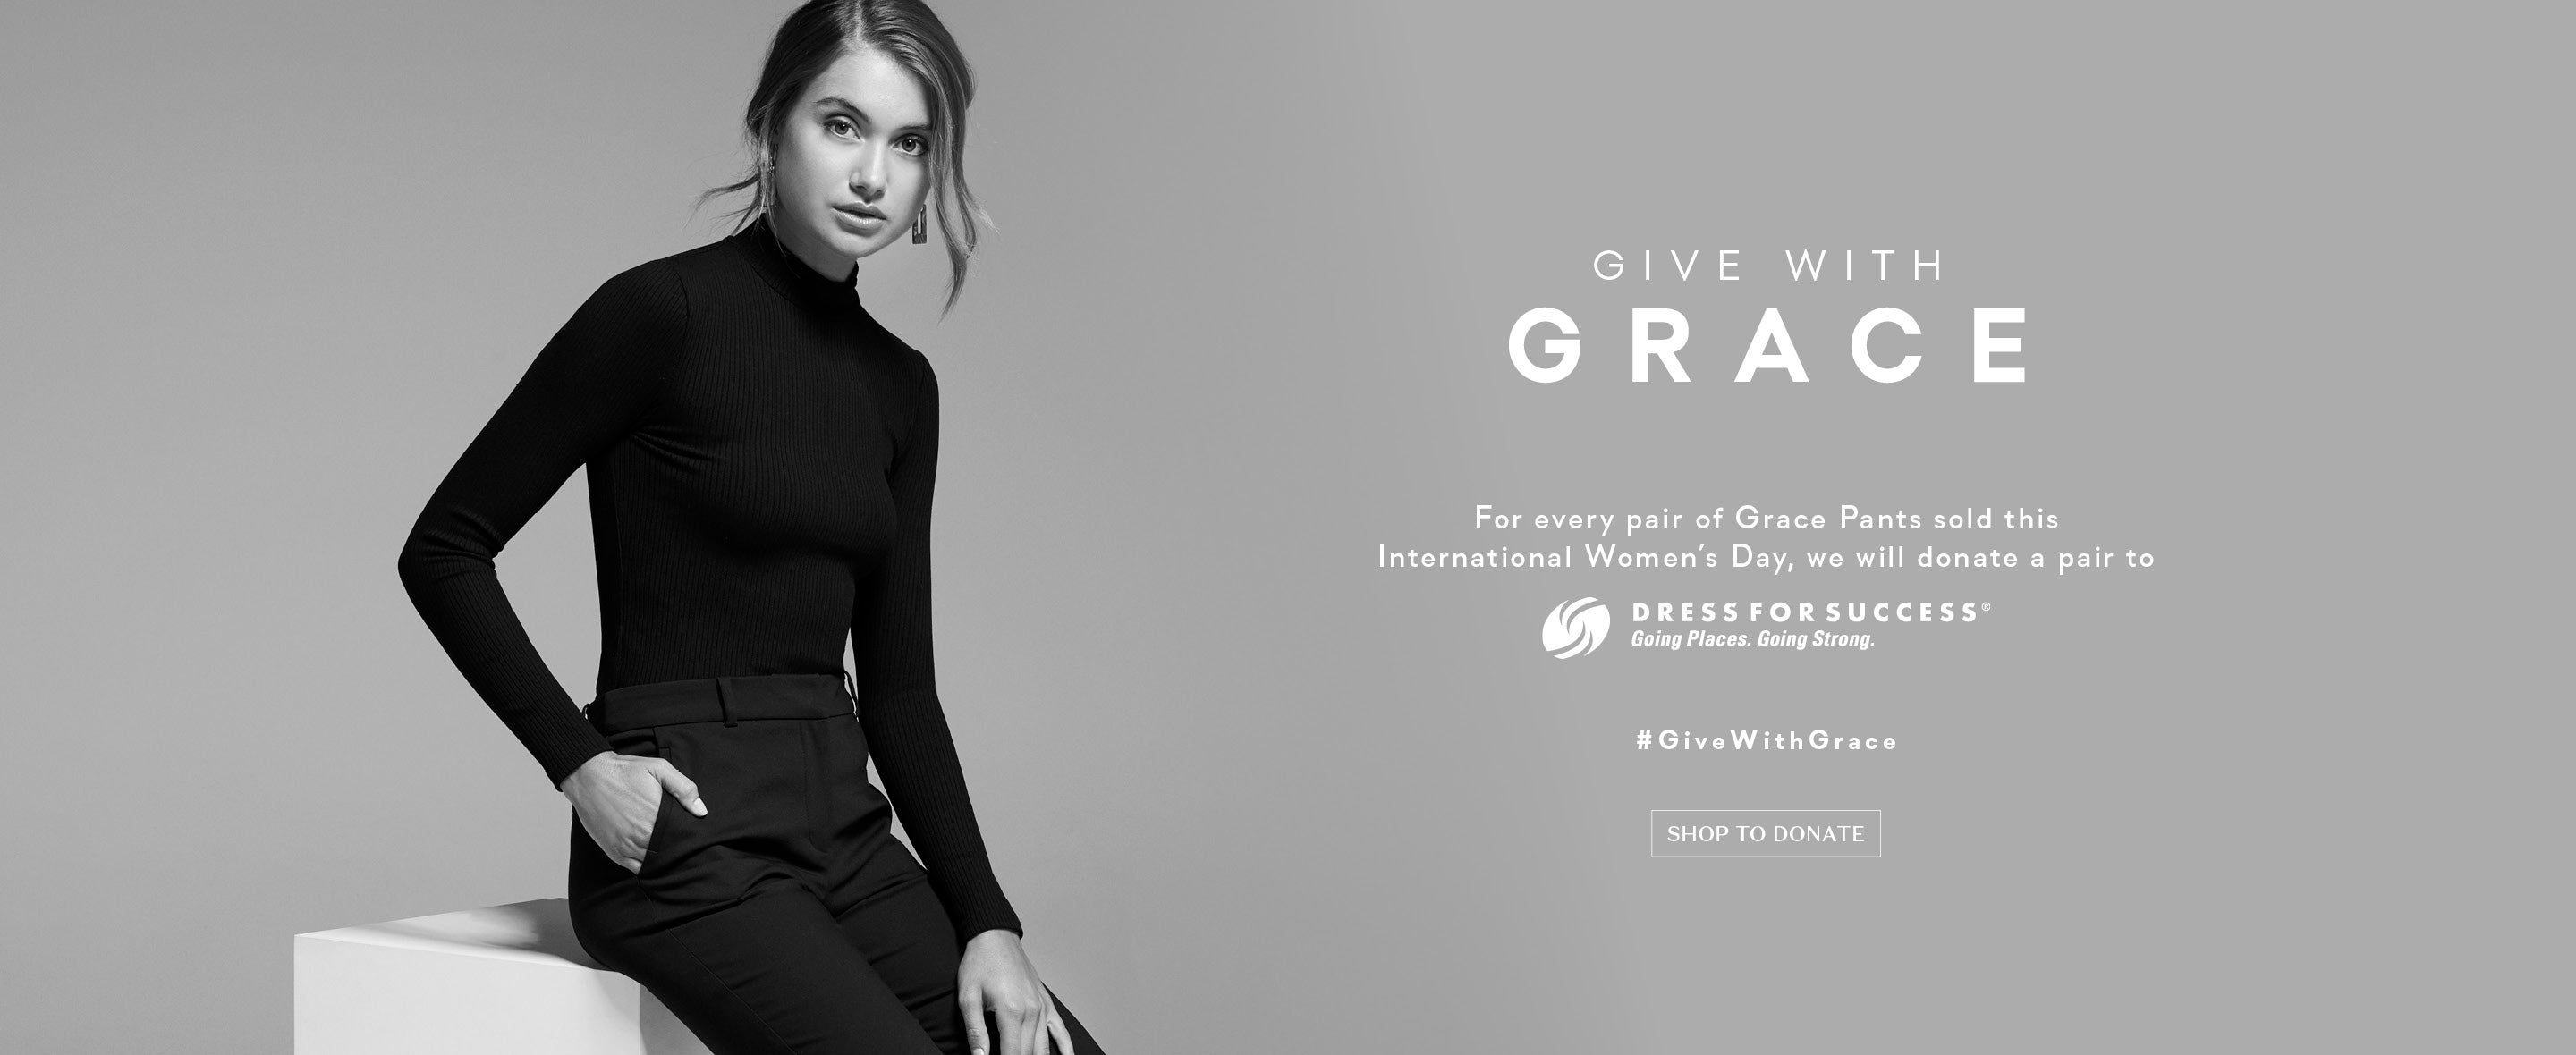 Give with Grace Campaign